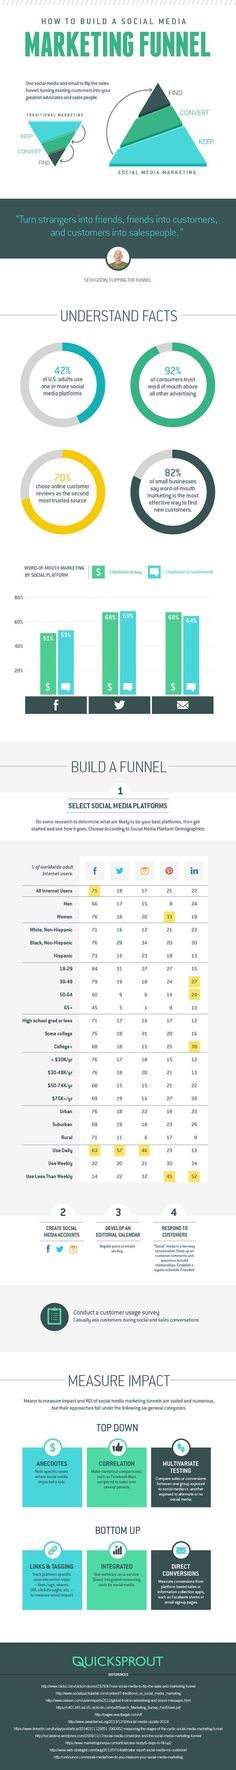 How You Can Build a Social Media Marketing Funnel [INFOGRAPHIC] While check out #knackmap. To help you achieve your social media goal, all in one place. Learn more at knackmap.com